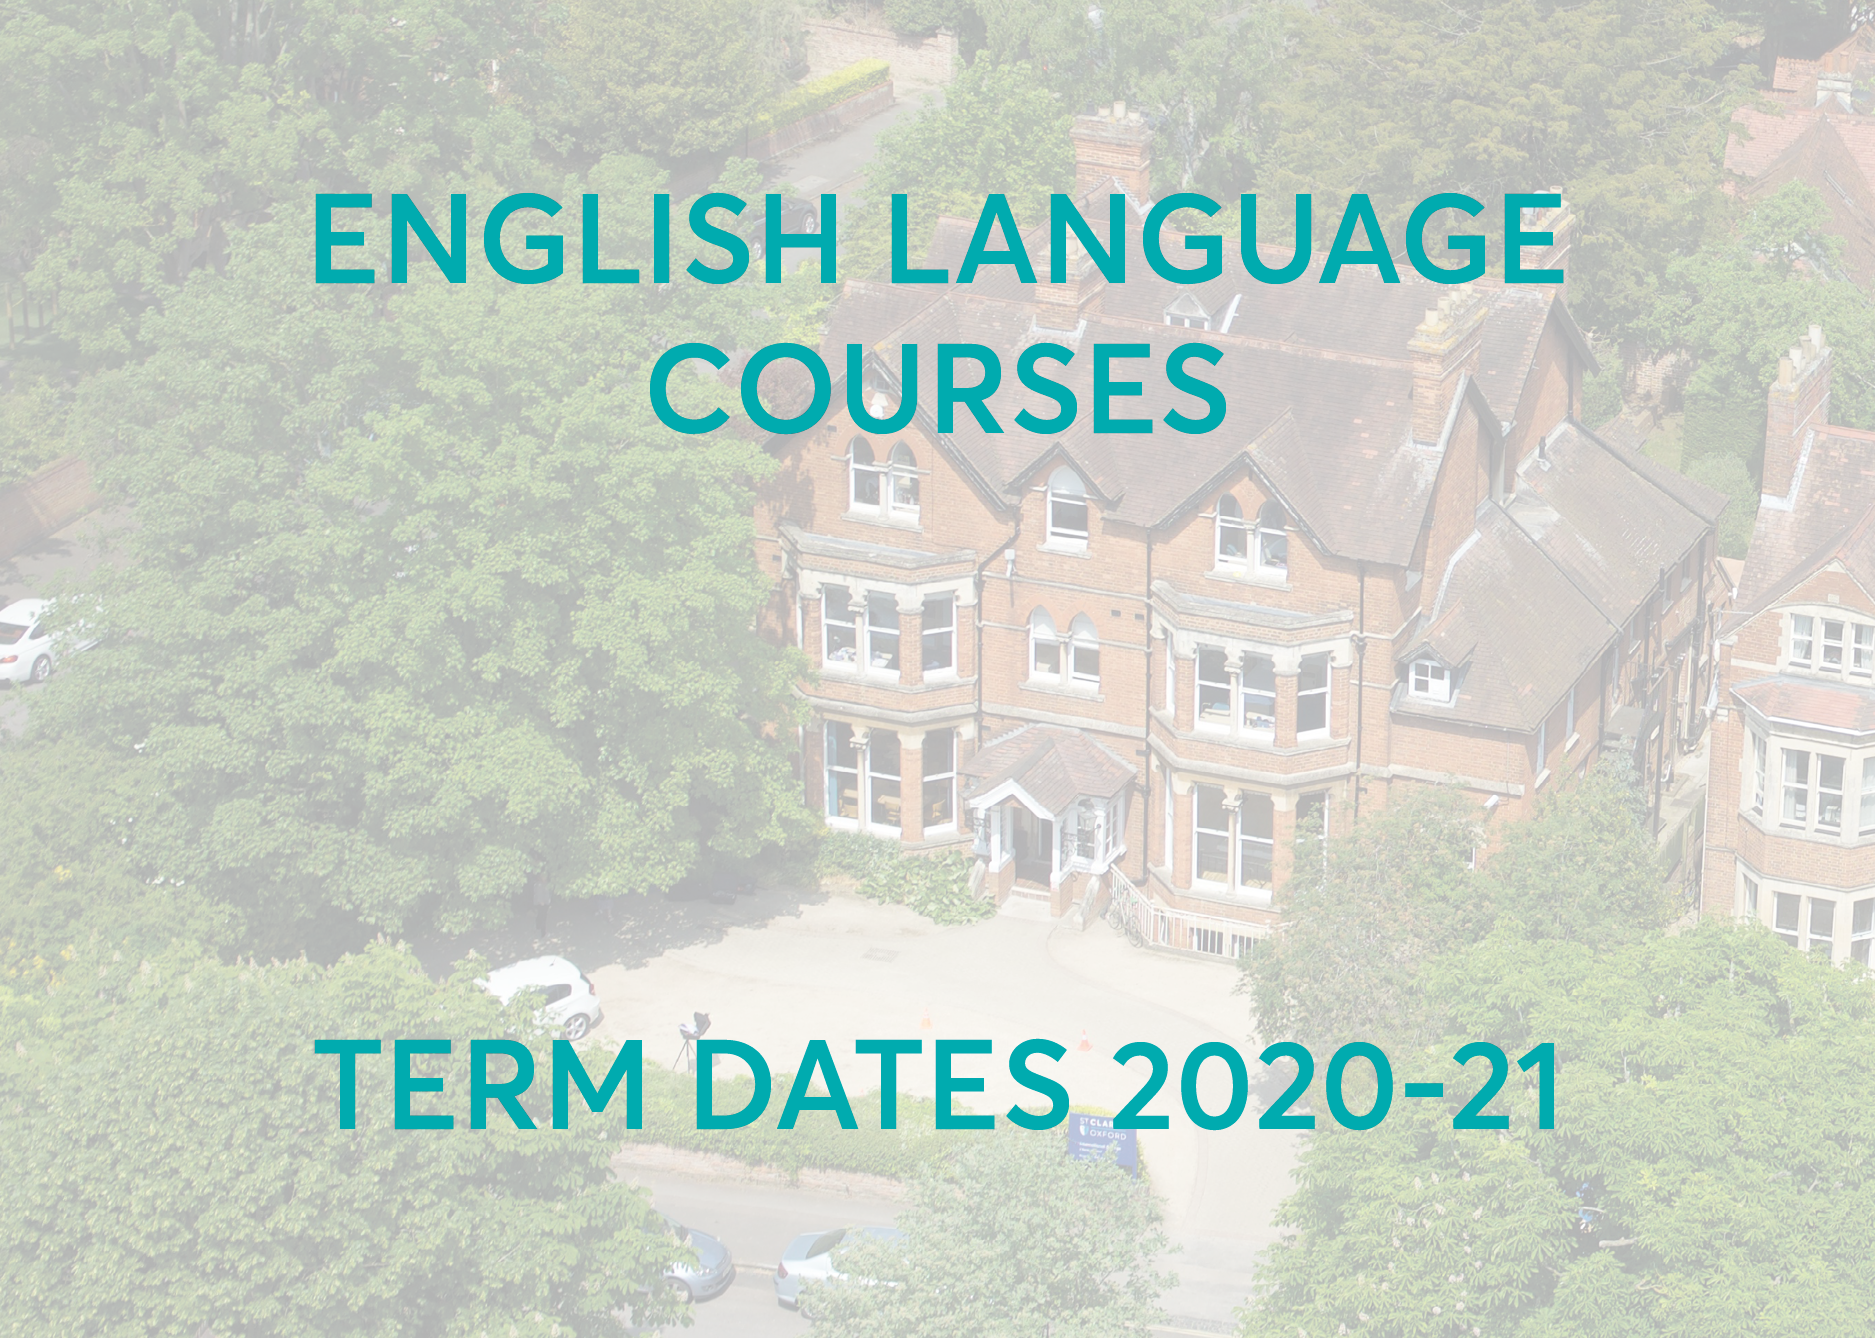 English language courses term dates